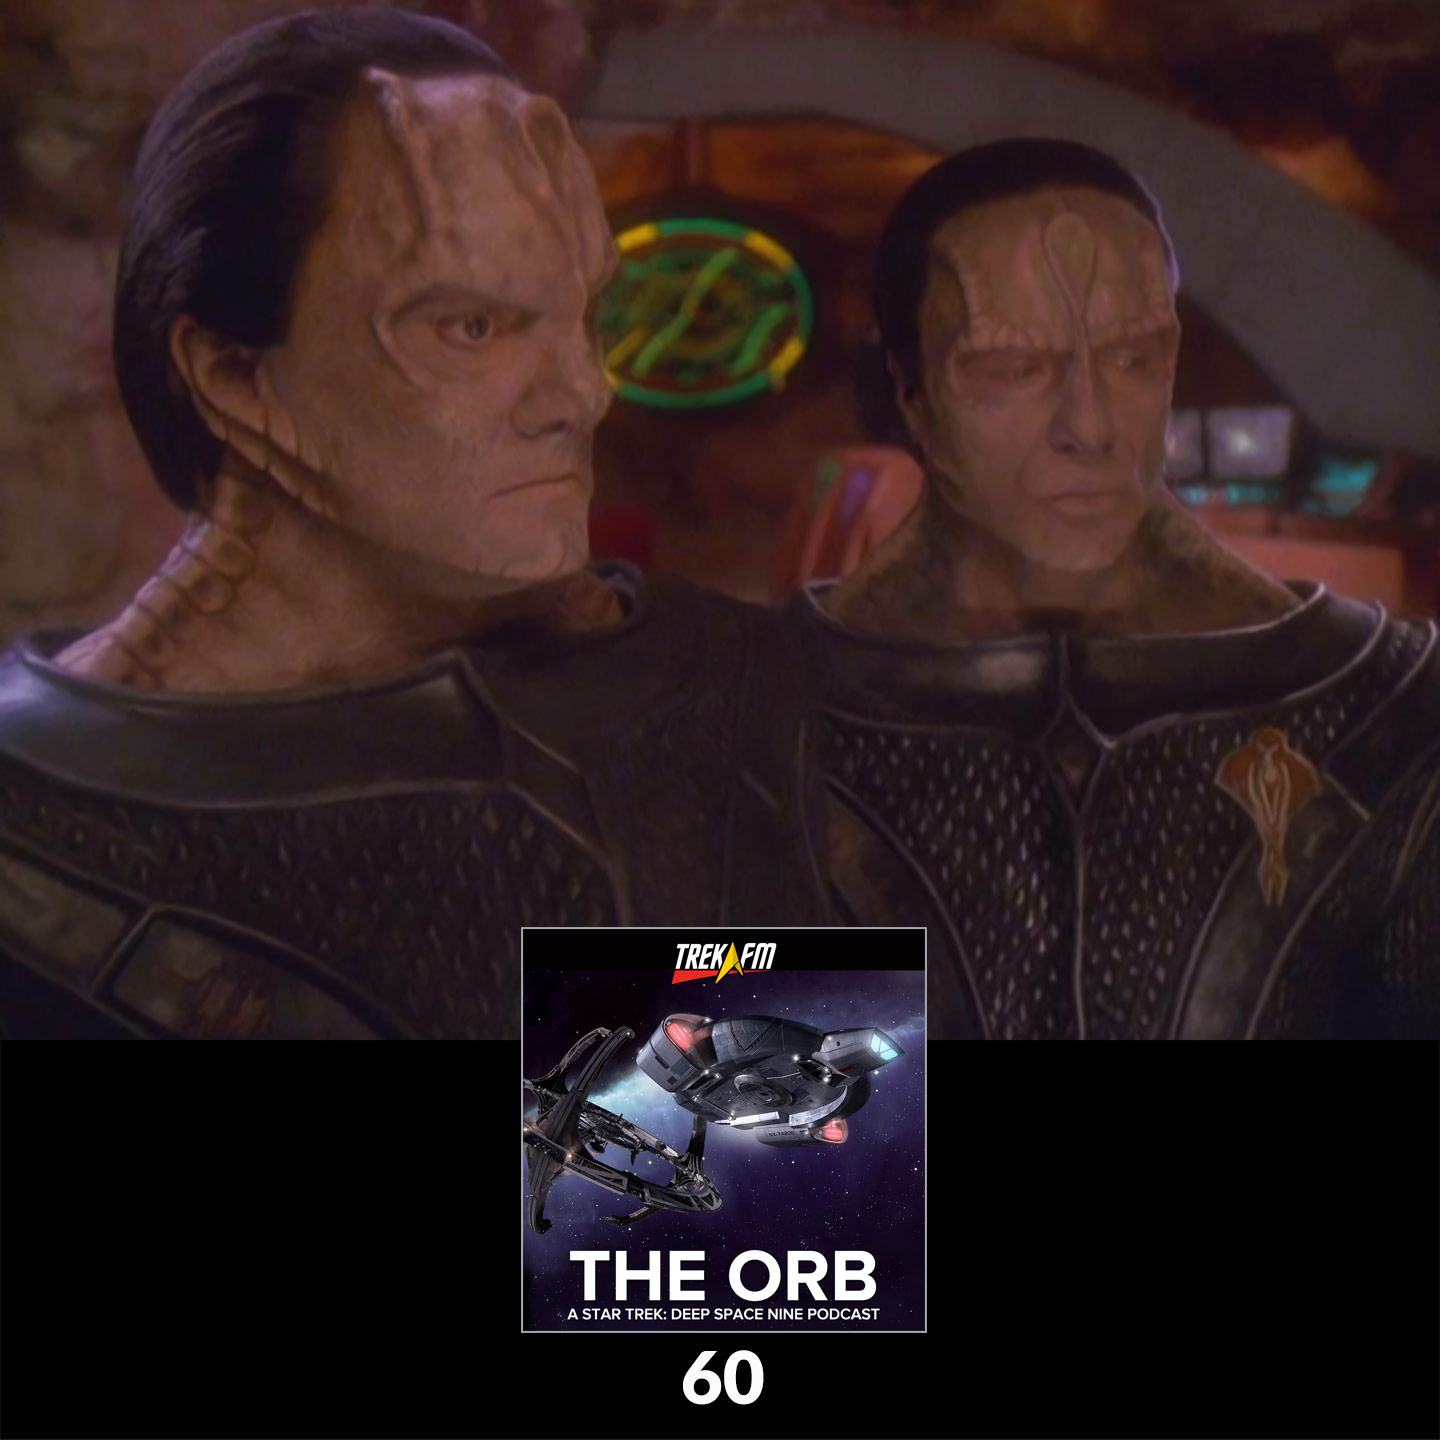 The Orb 60: A Repetitive Cycle of Resistance